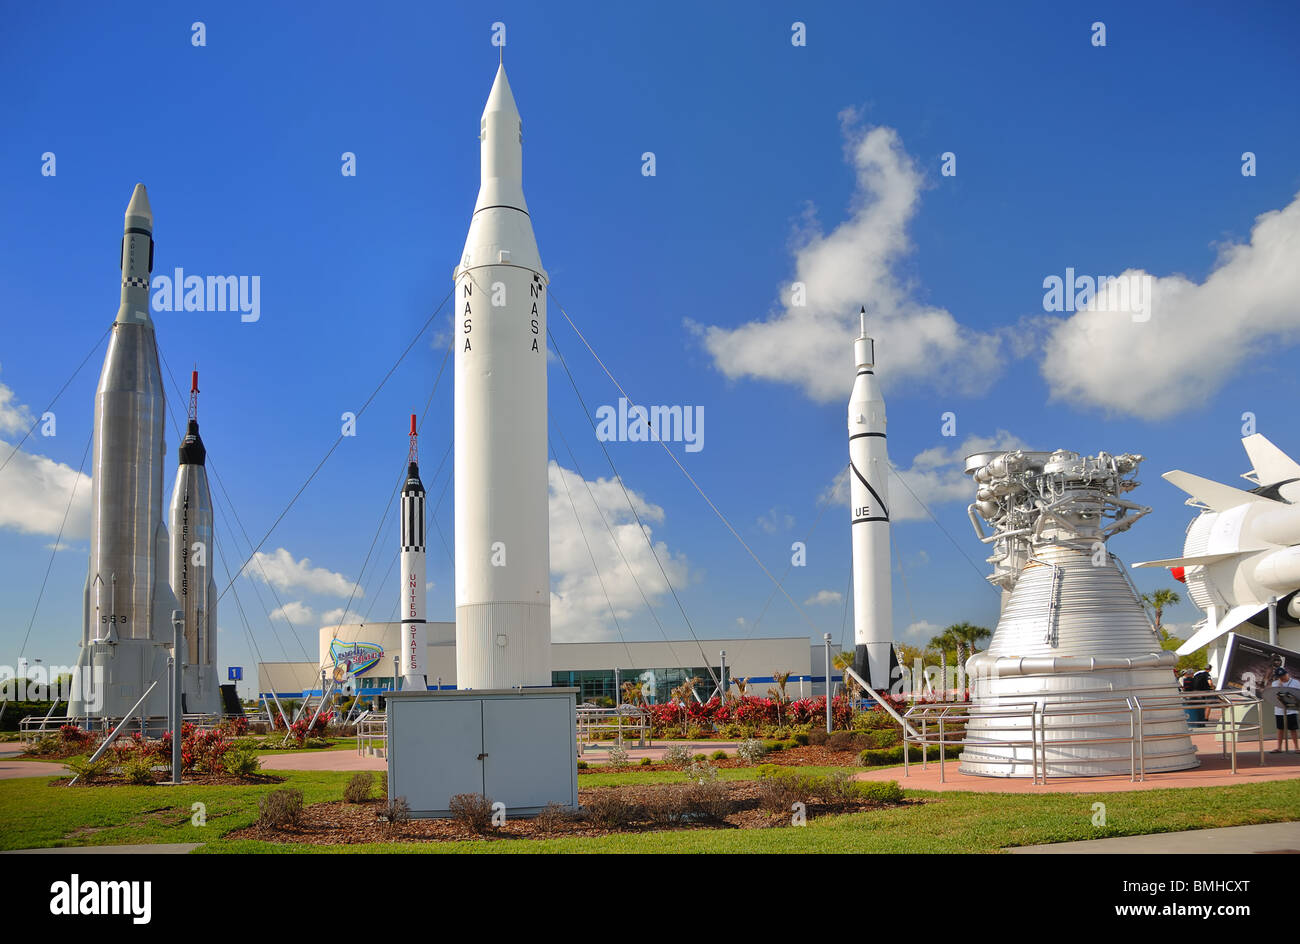 The Rocket Garden at The Kennedy Space Centre, Cape Canaveral, Florida, USA, has recently been redeveloped. - Stock Image